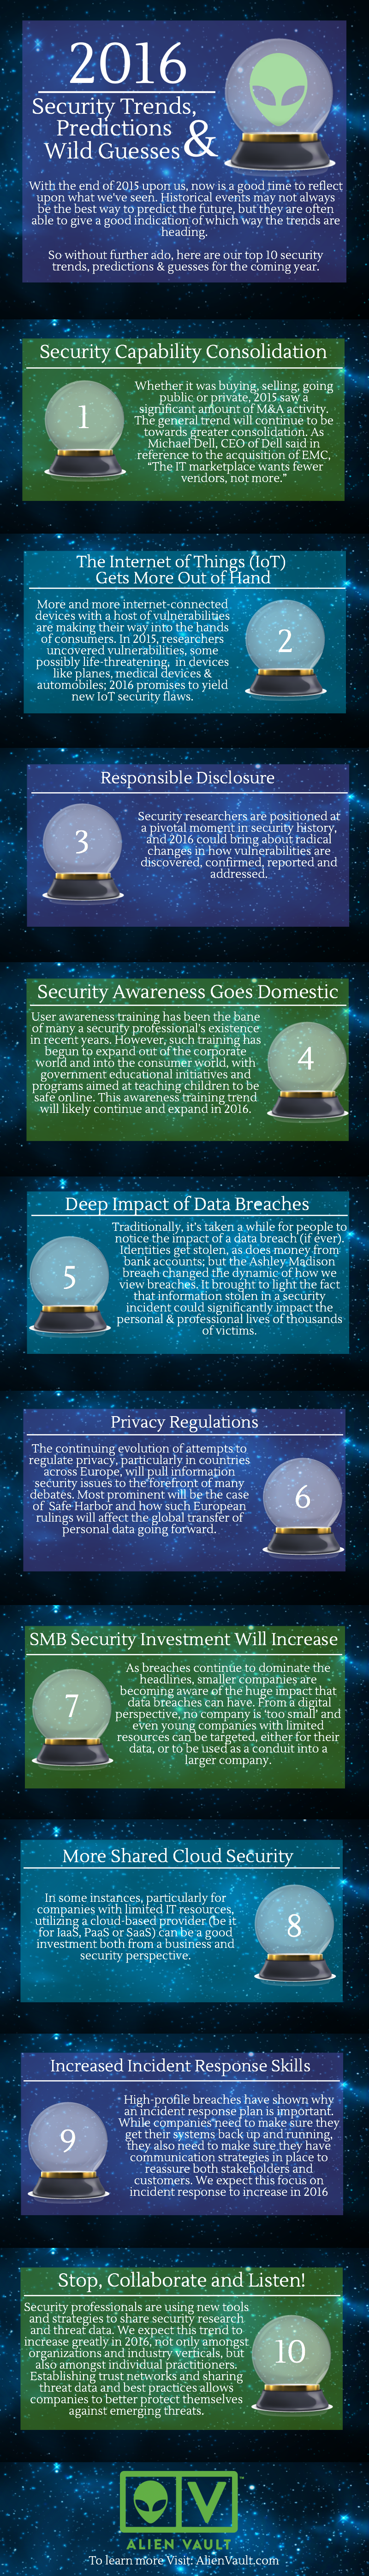 2016-security-trends-infographic-Javvad-Malik